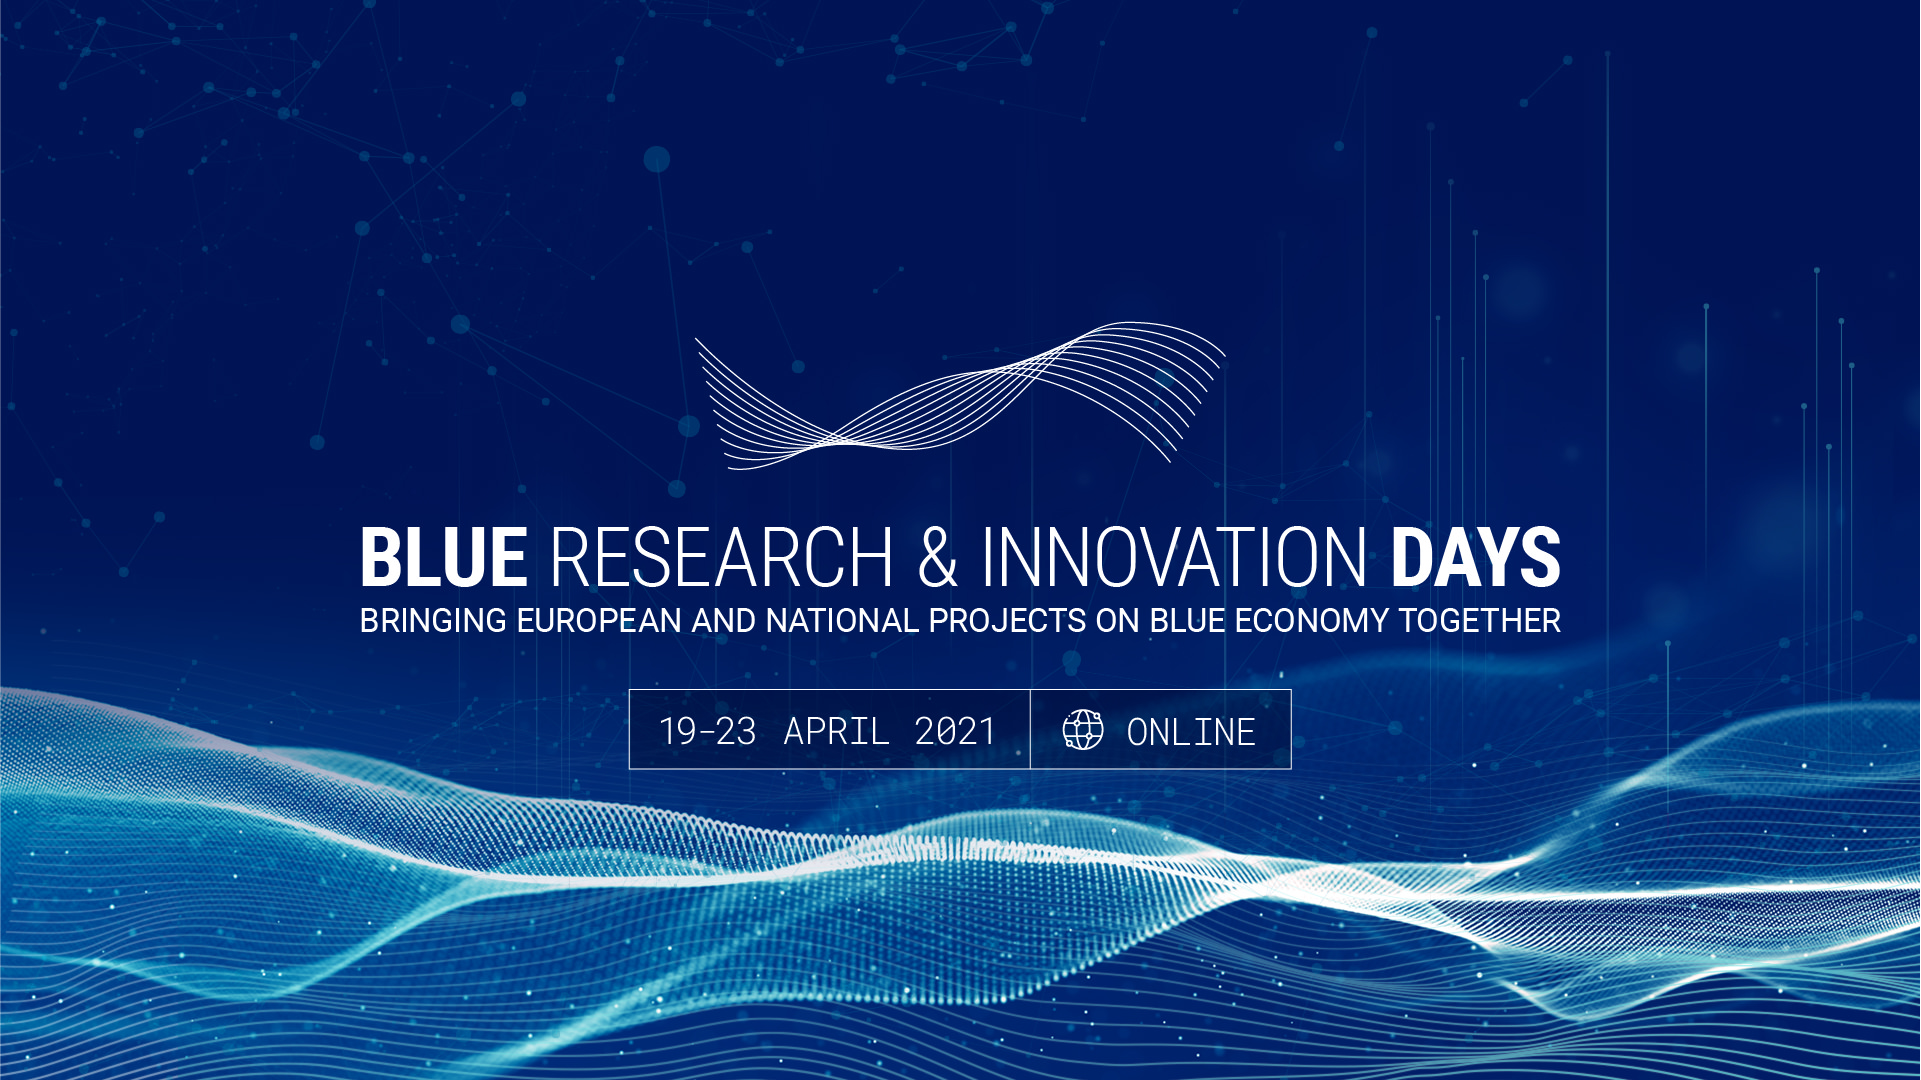 BLUE RESEARCH AND INNOVATION DAYS – the Data Science Lab is there!